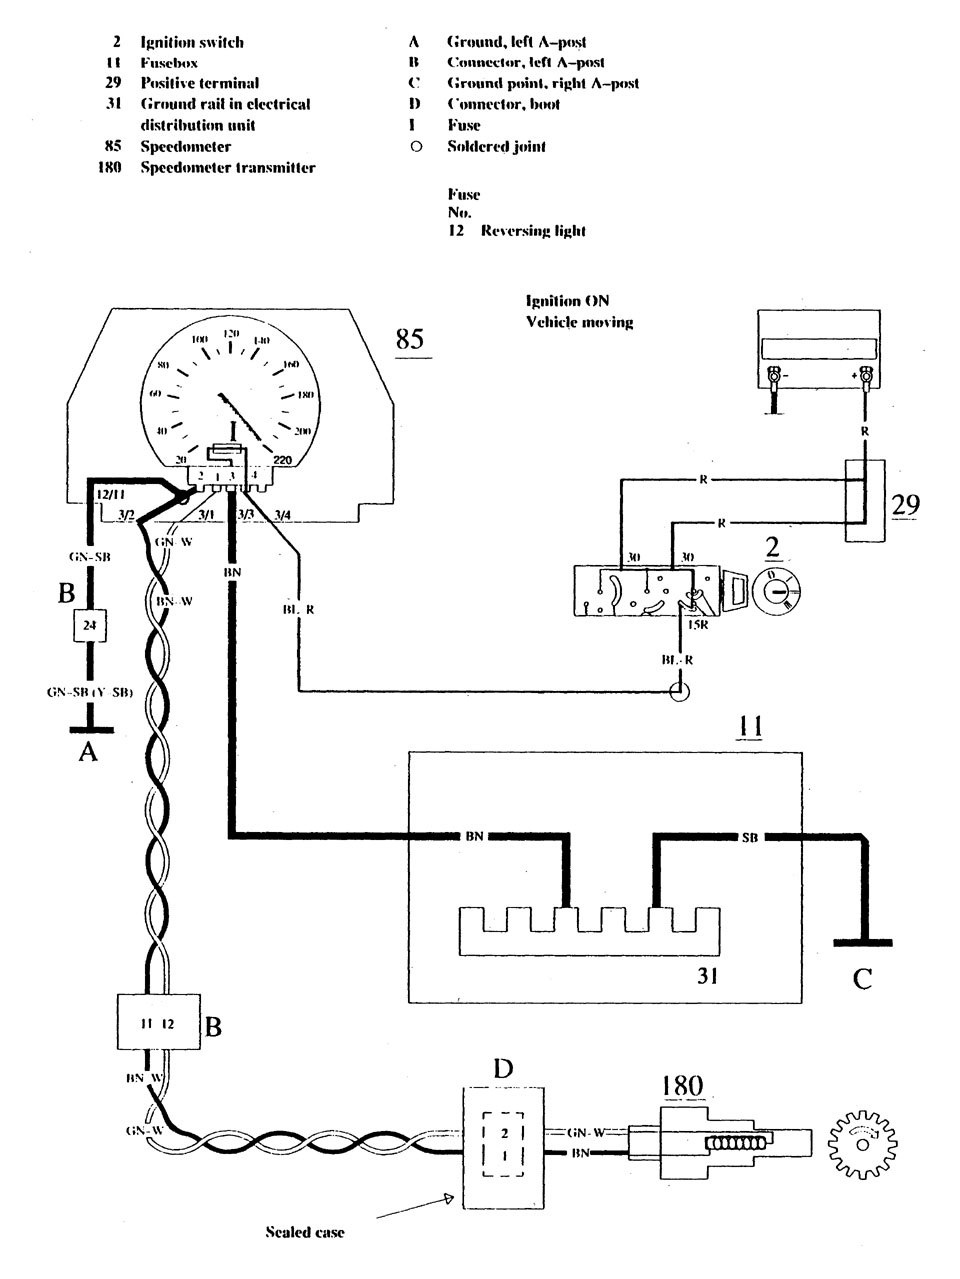 Volvo Ignition Wiring Diagram Wiring Diagram Meta